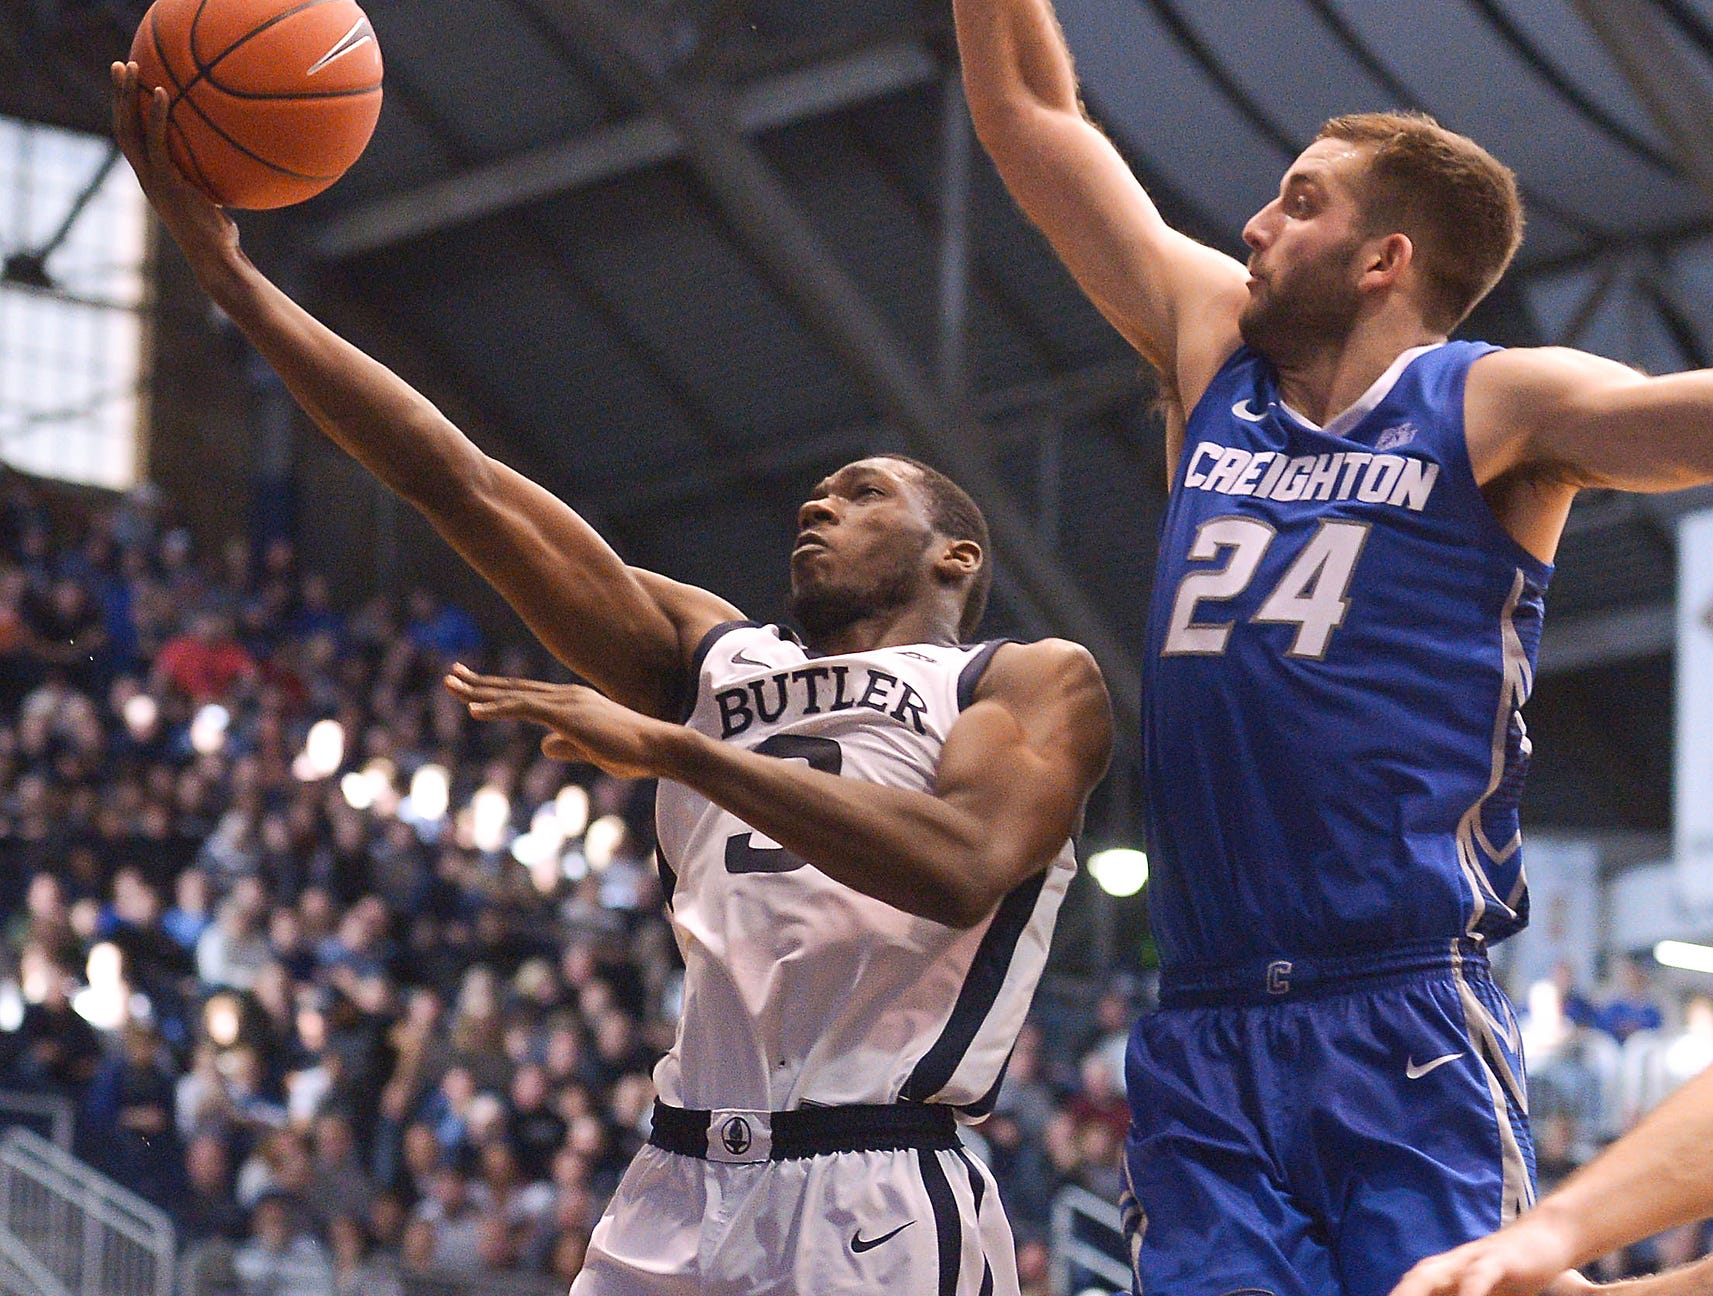 Butler Bulldogs guard Kamar Baldwin (3) scores over Creighton Bluejays guard Mitch Ballock (24) during the second half of game action between Butler University and Creighton University, at Hinkle Fieldhouse in Indianapolis, Indiana on Saturday, Jan. 5, 2019. The Butler Bulldogs defeated the Creighton Bluejays 84-69.